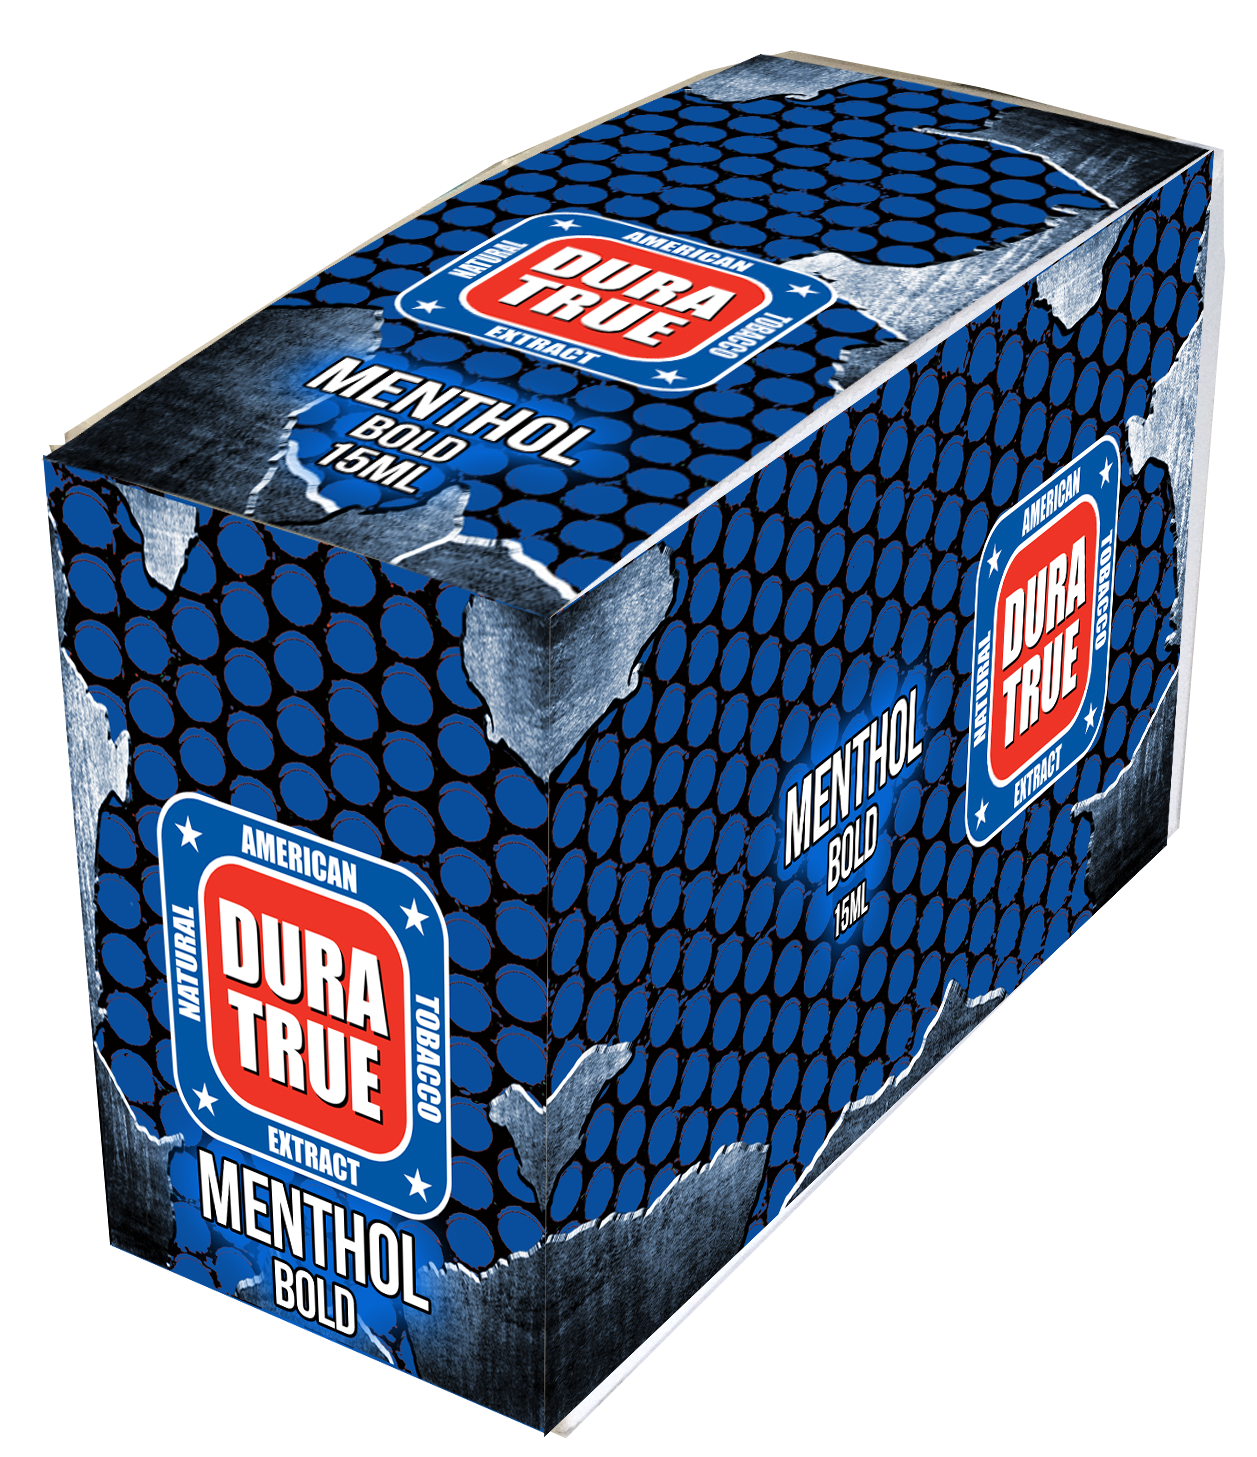 duratrue-box-mock-closedblue1.png